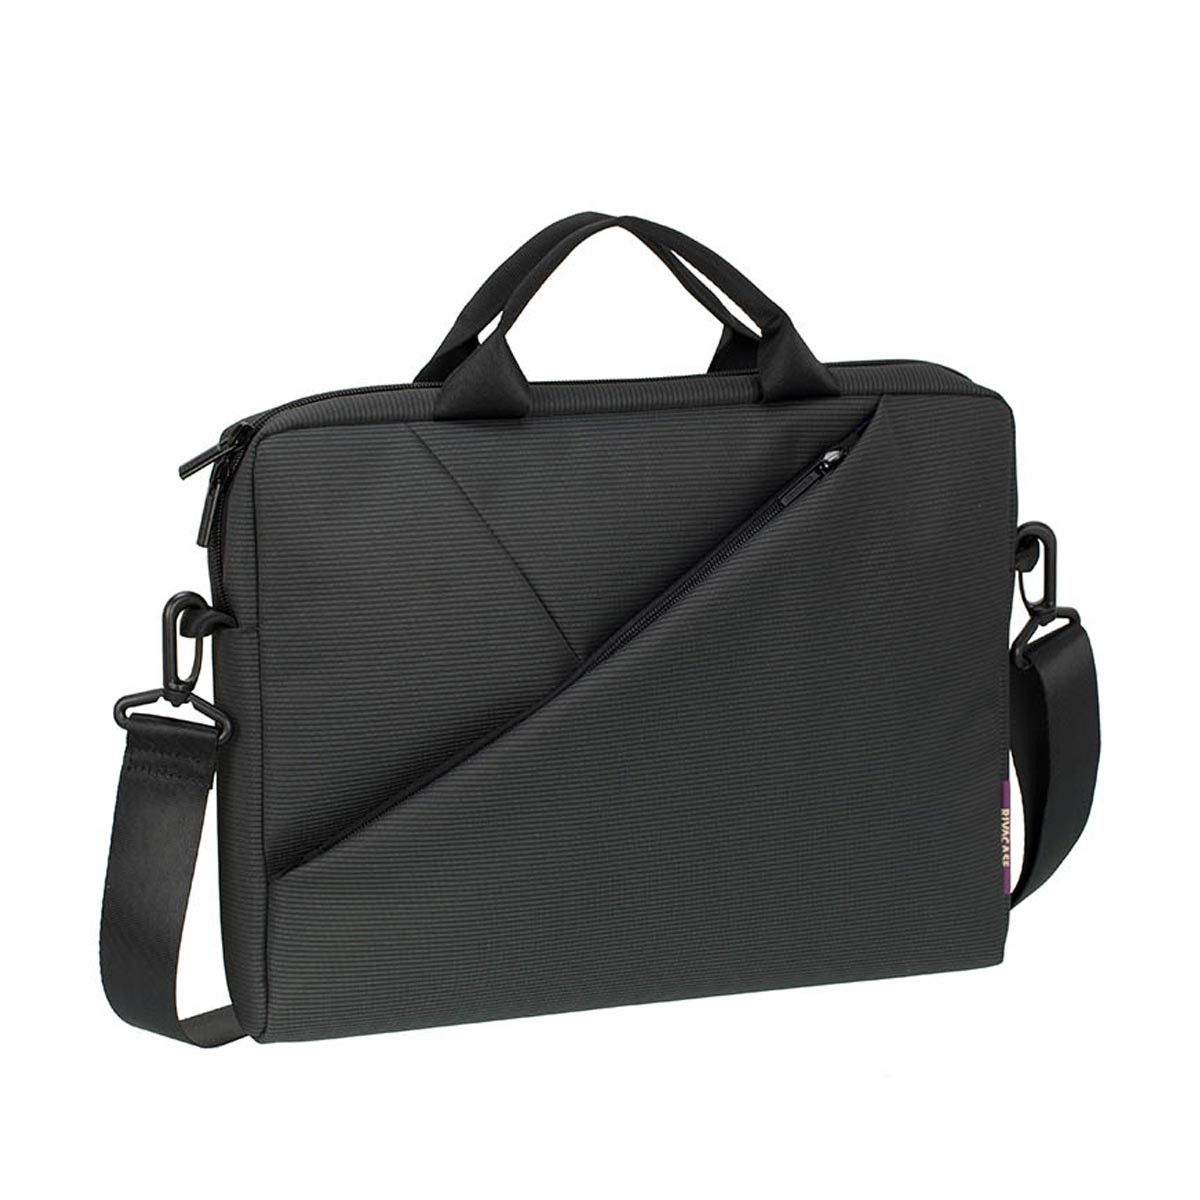 RivaCase - 8720 Laptop bag 13 b183724d13